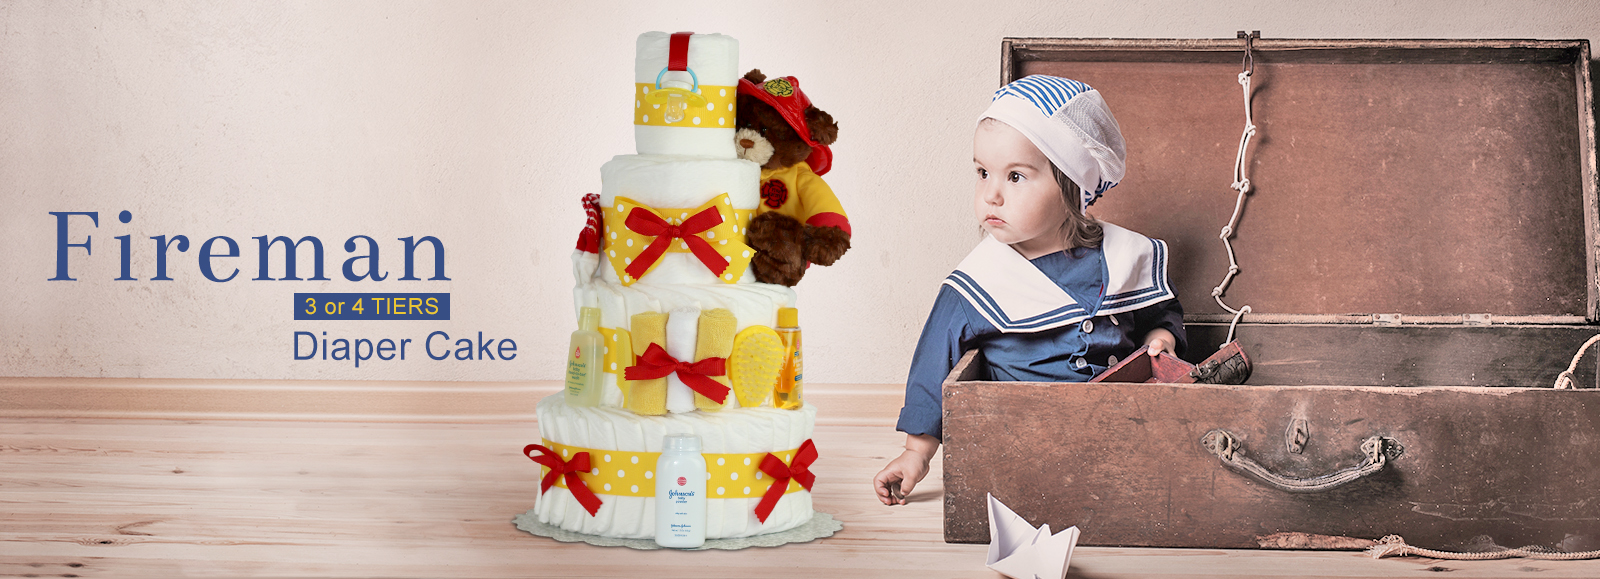 Fireman 3 or 4 Tiers Diaper Cake